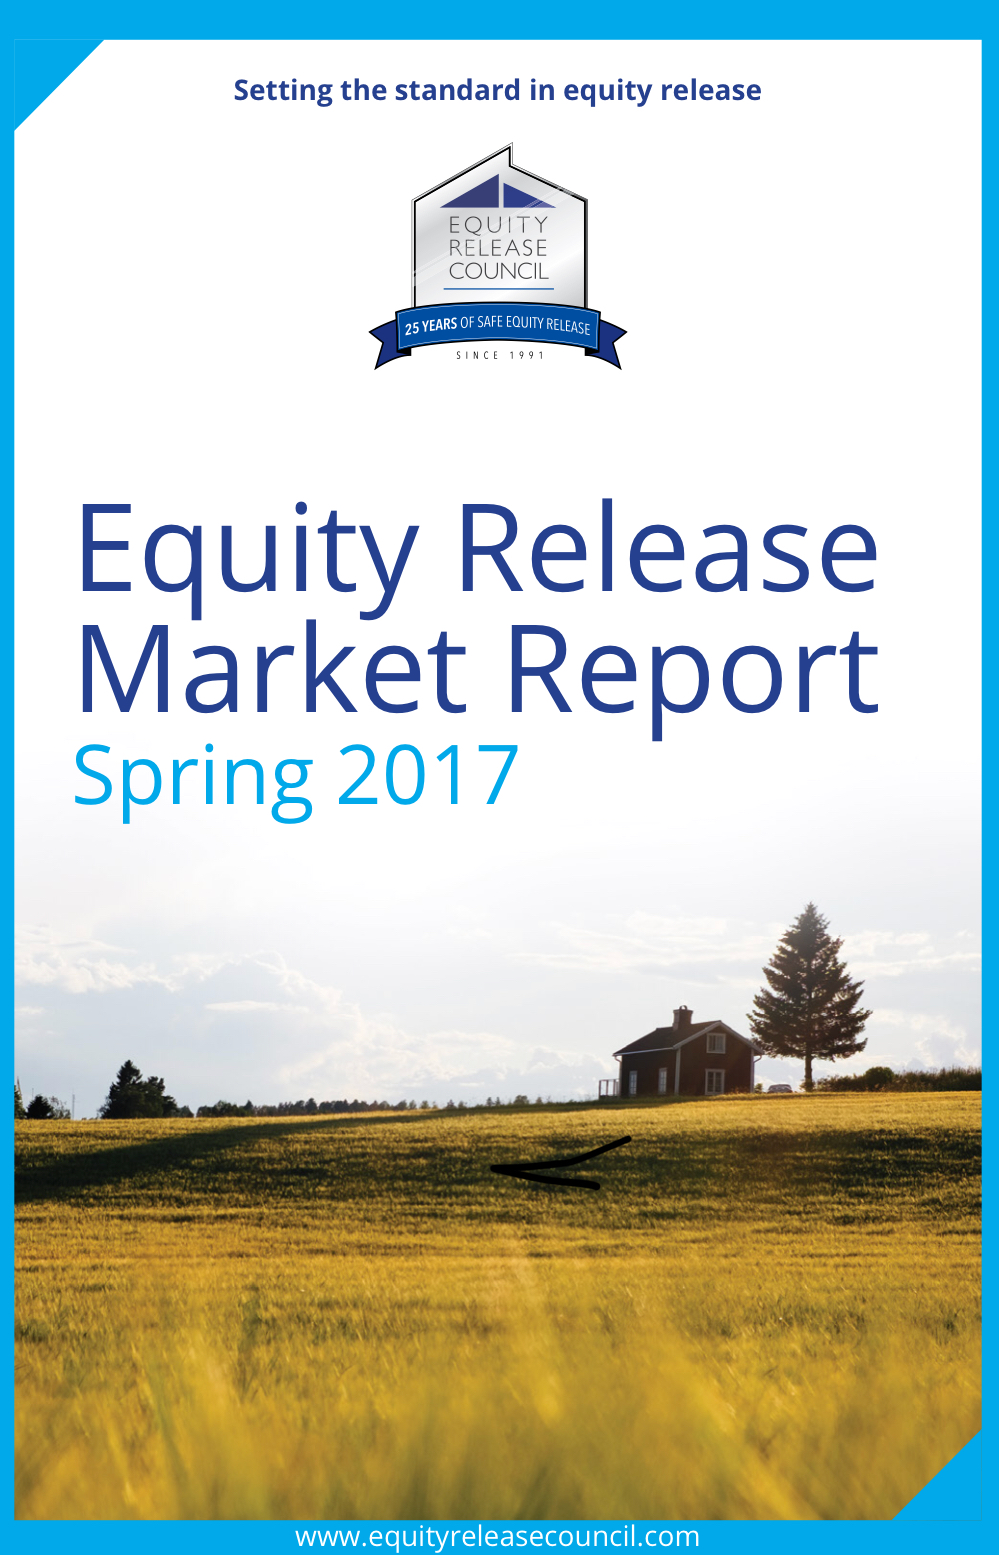 Equity Release Booming in the UK